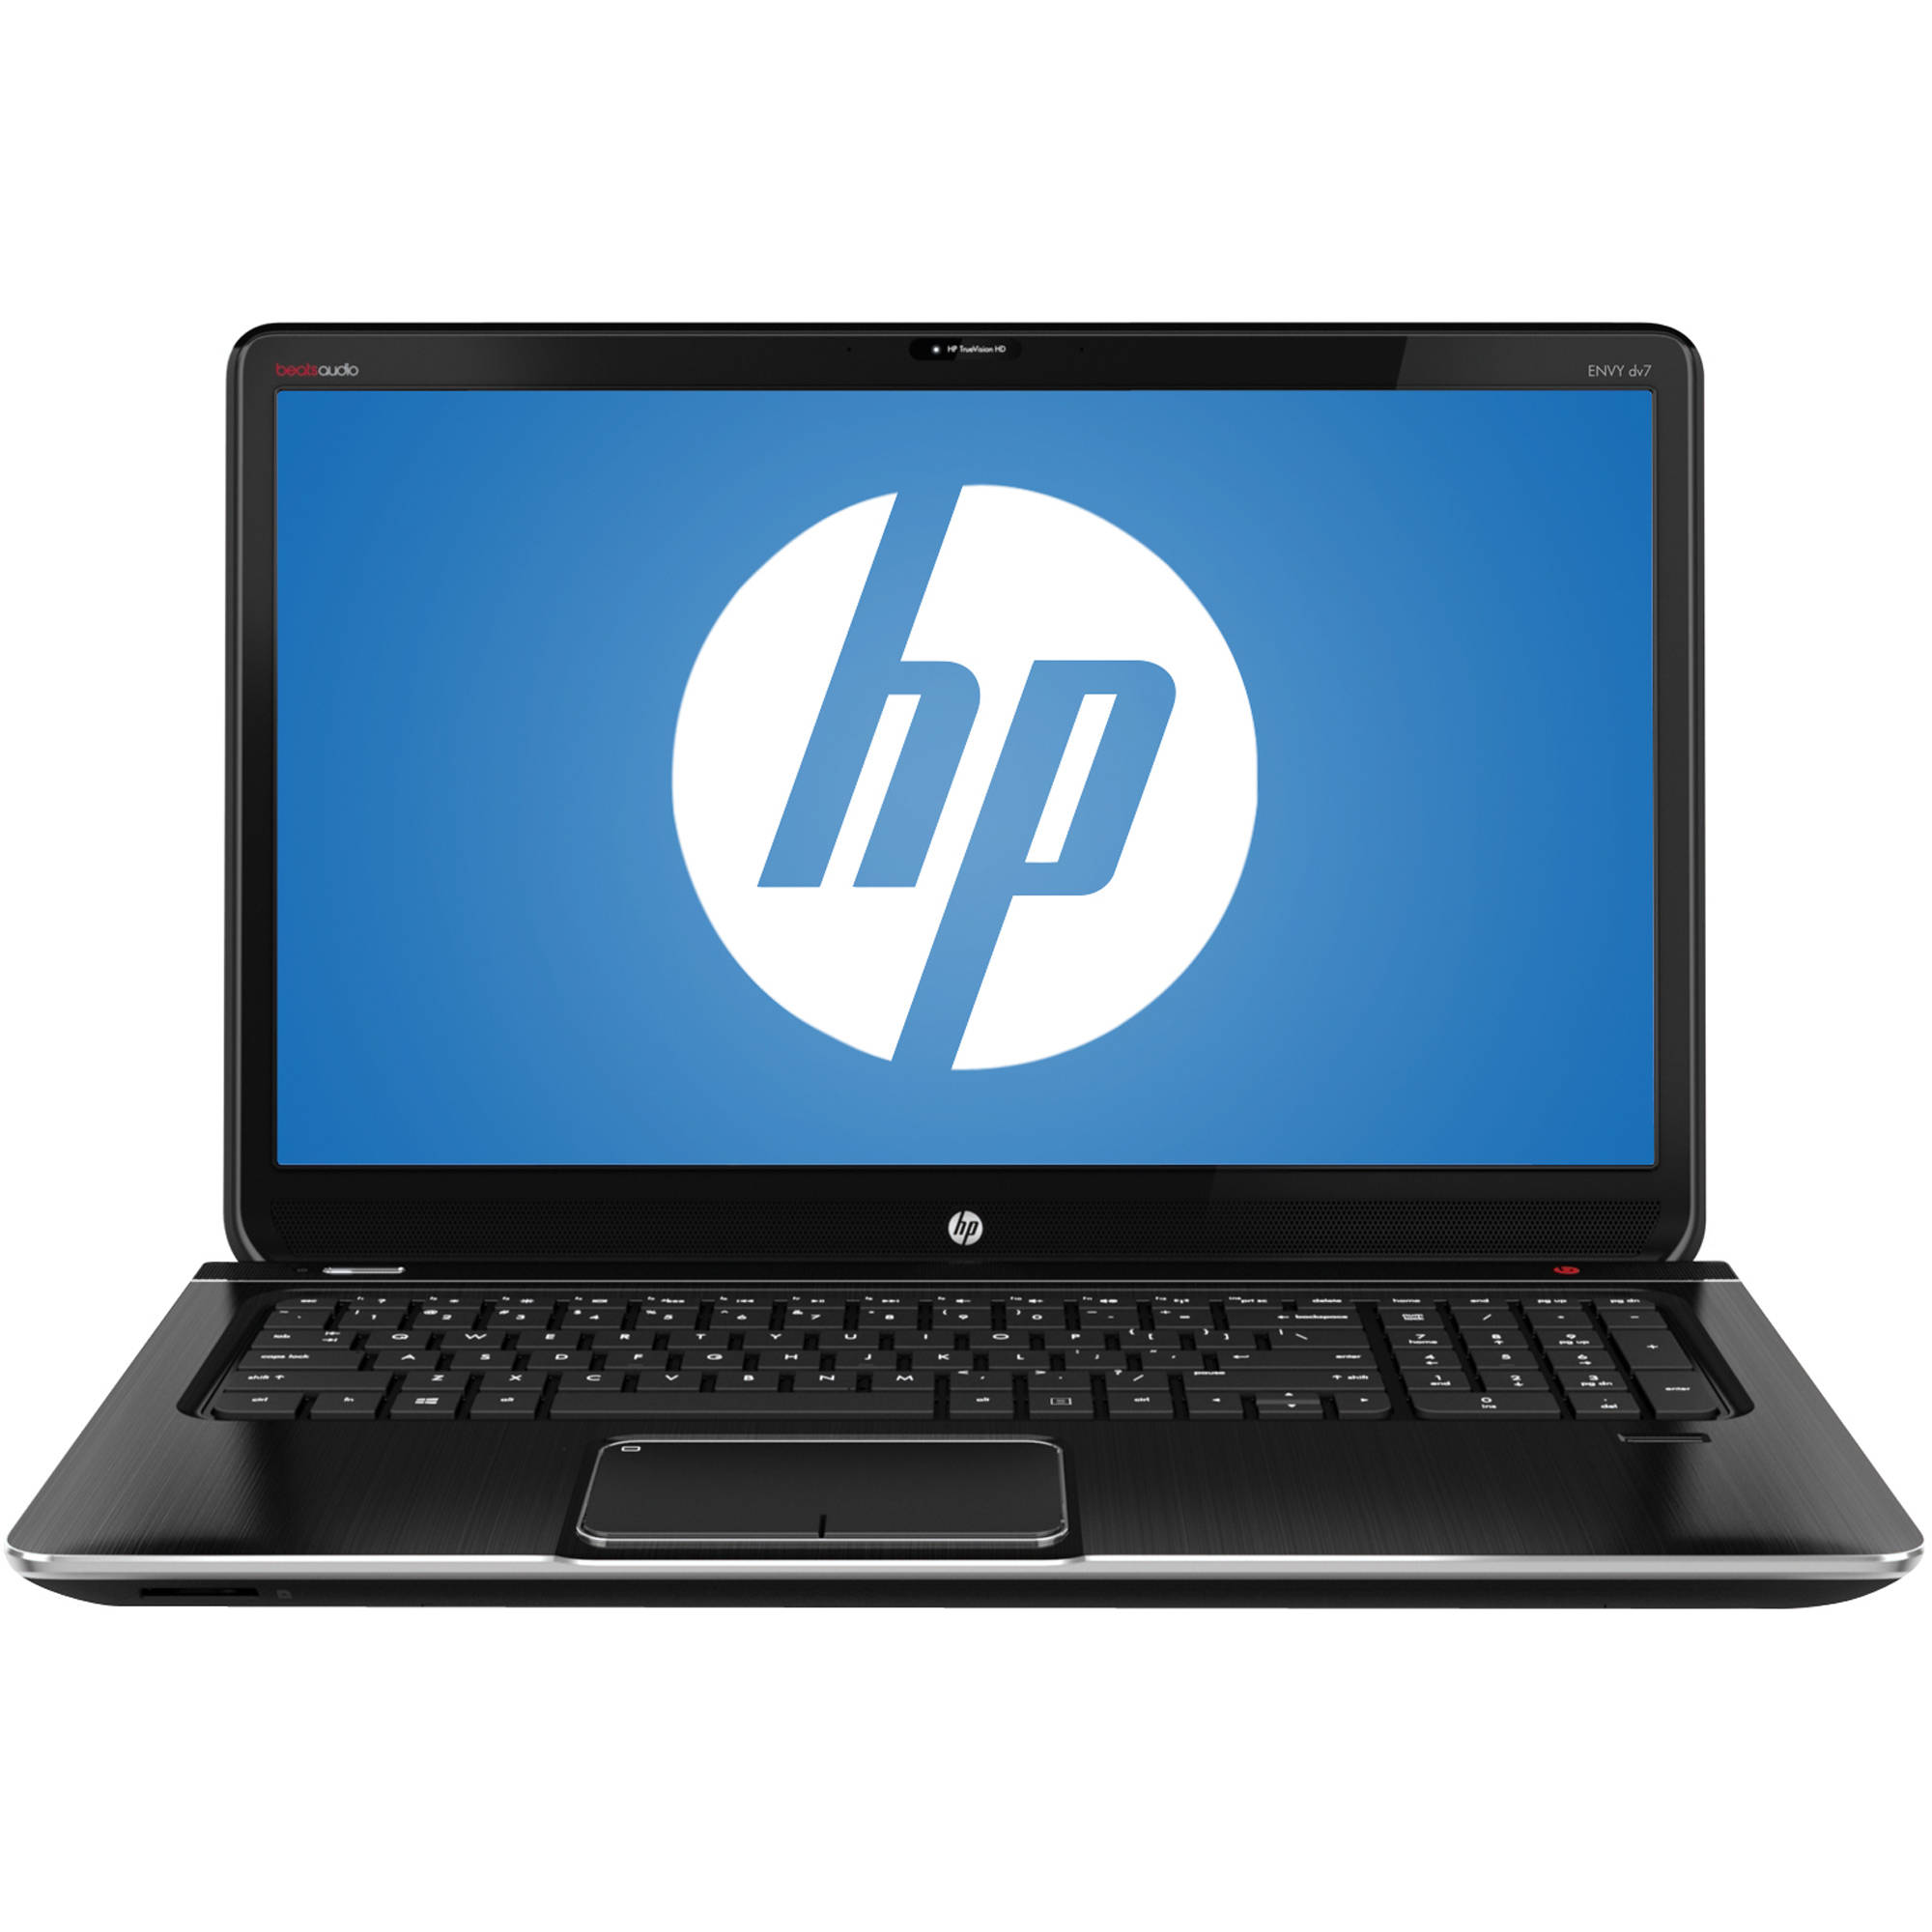 "HP 17.3"" Envy dv7-7247cl Laptop PC with Intel Core i7-3630QM Processor and Windows 8"